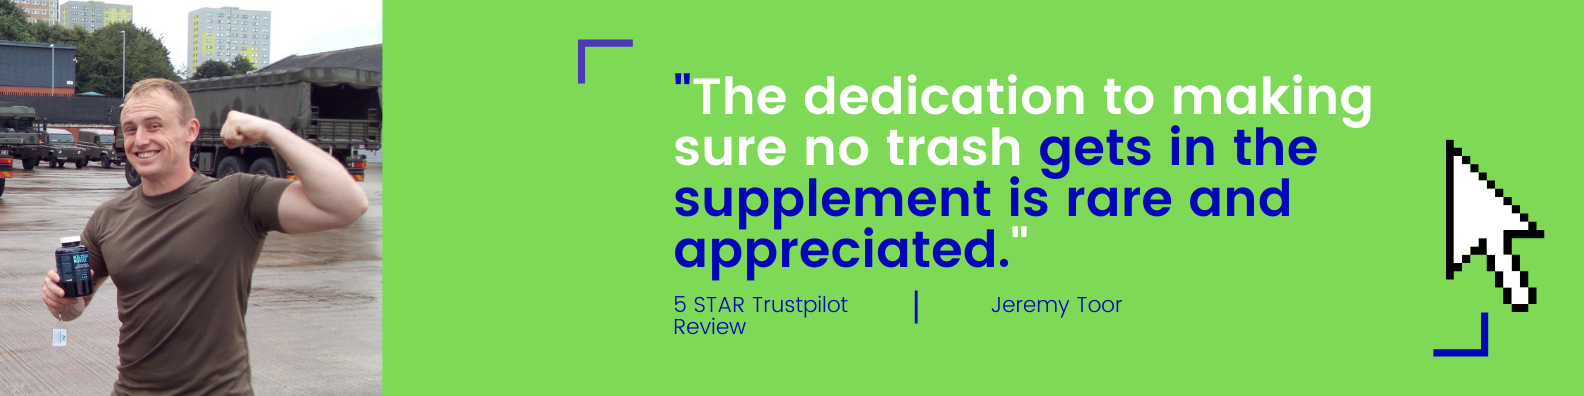 military mucle trustpilot review